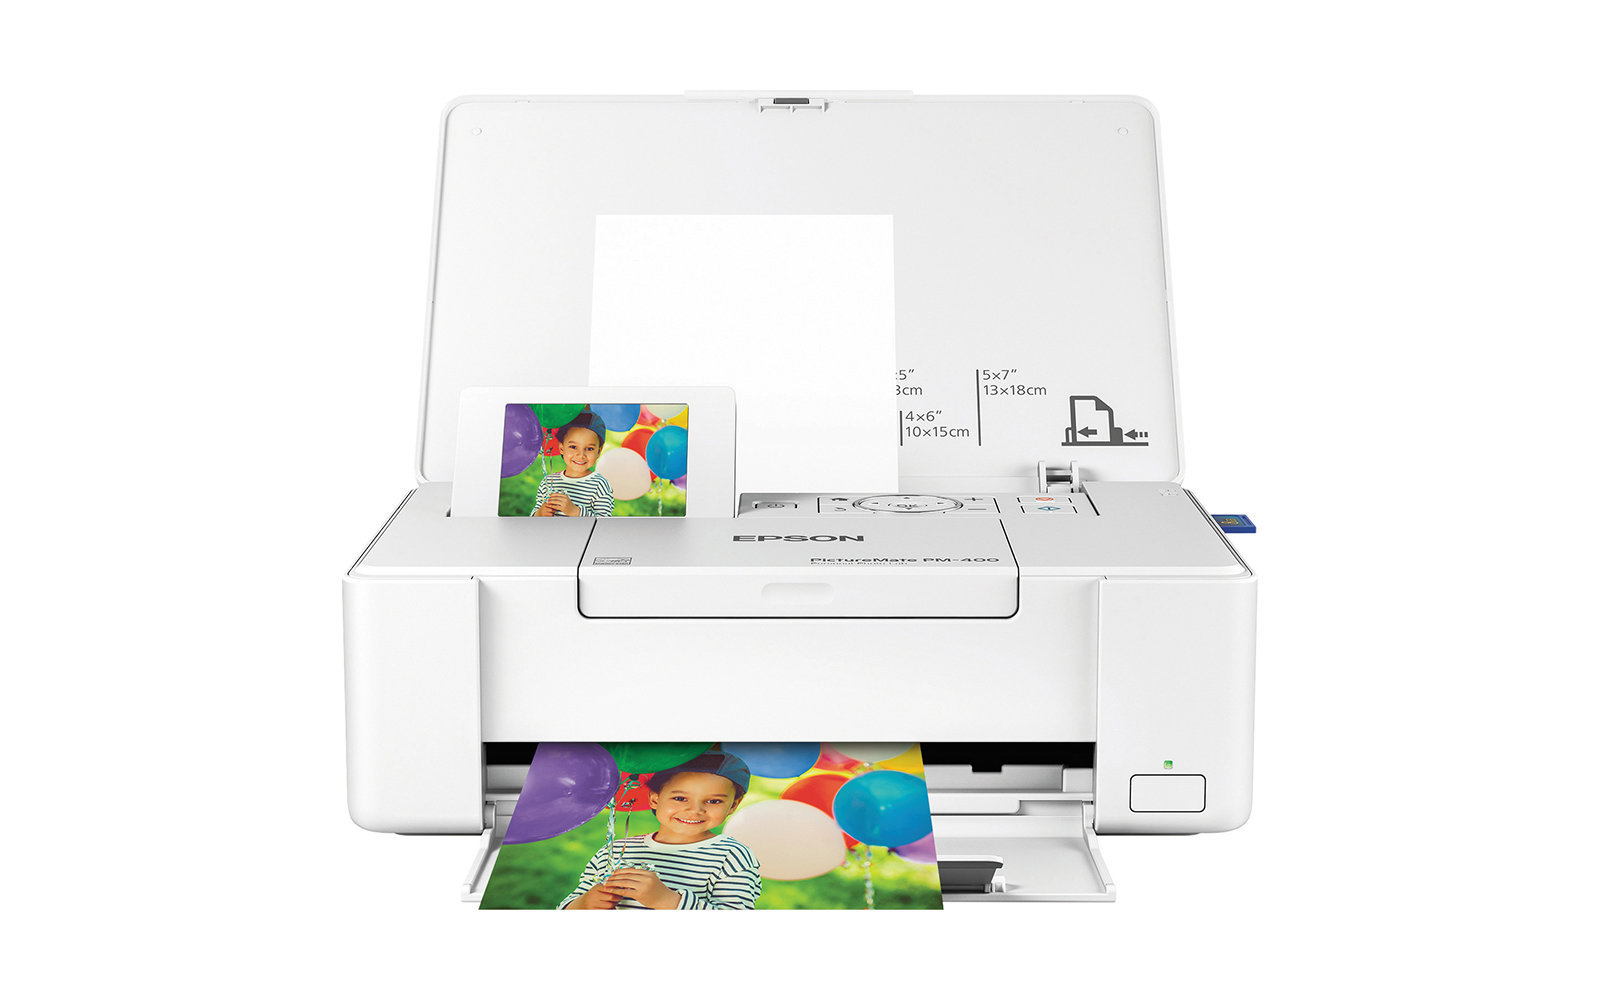 Professional-grade Portable Photo Printer: Epson PictureMate PM-400